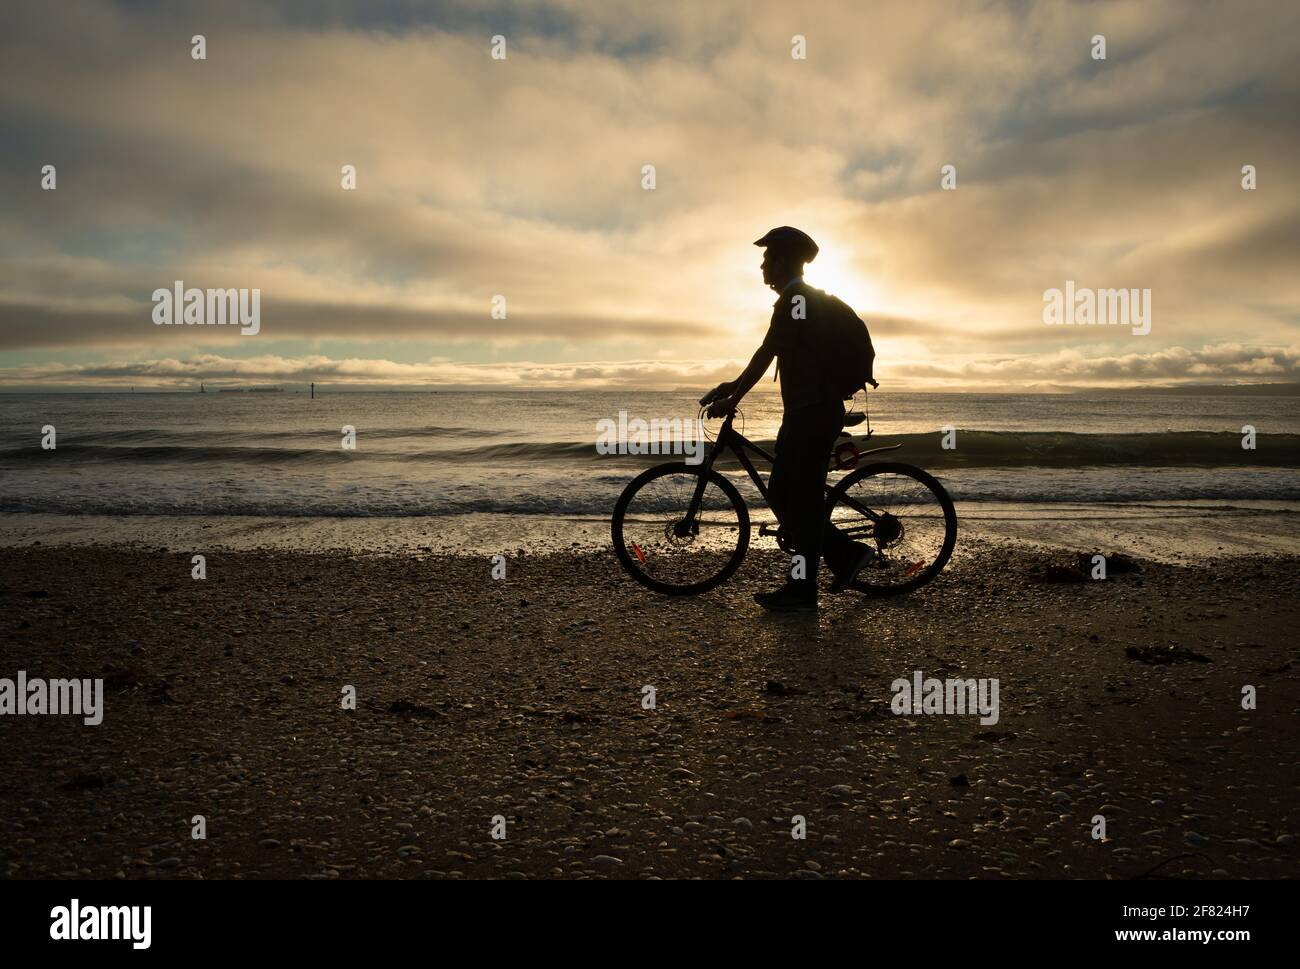 Silhouette image of a cyclist walking and pushing the bike on the beach at sunrise Stock Photo